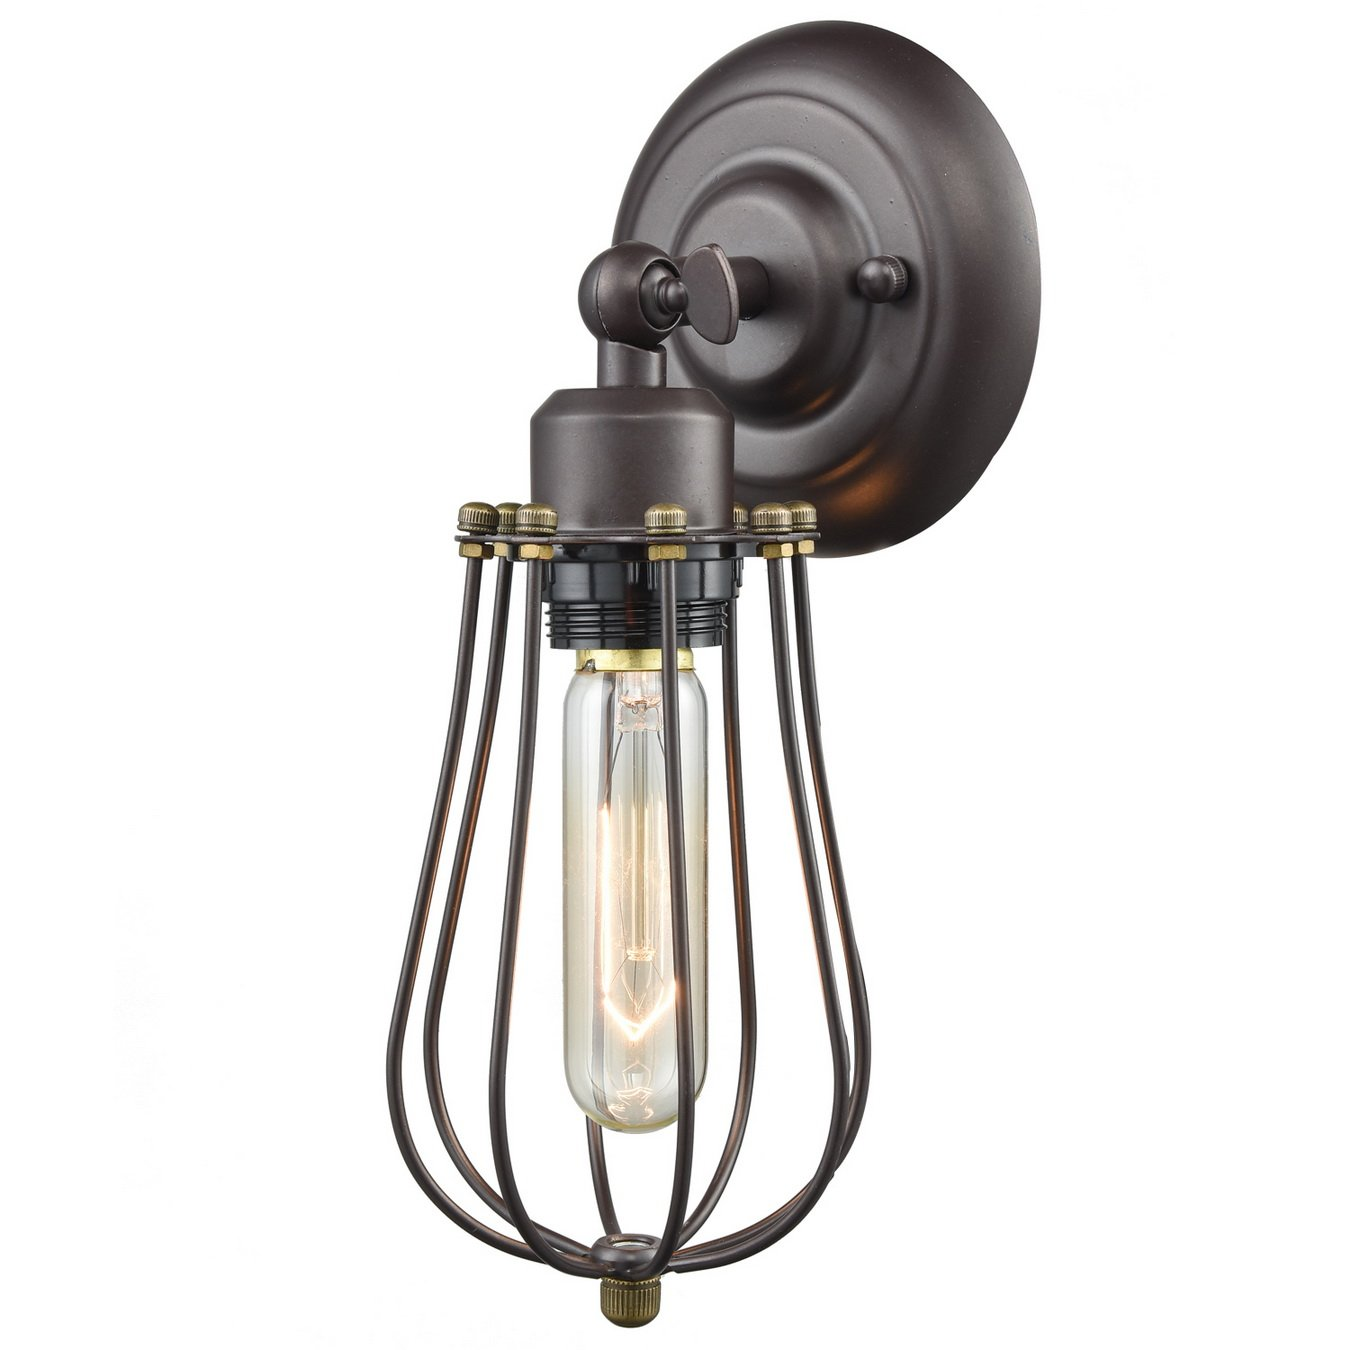 YOBO Lighting Industrial Edison Mini Wire Cage Oil Rubbed Bronze 1-light Wall Sconce by YOBO Lighting